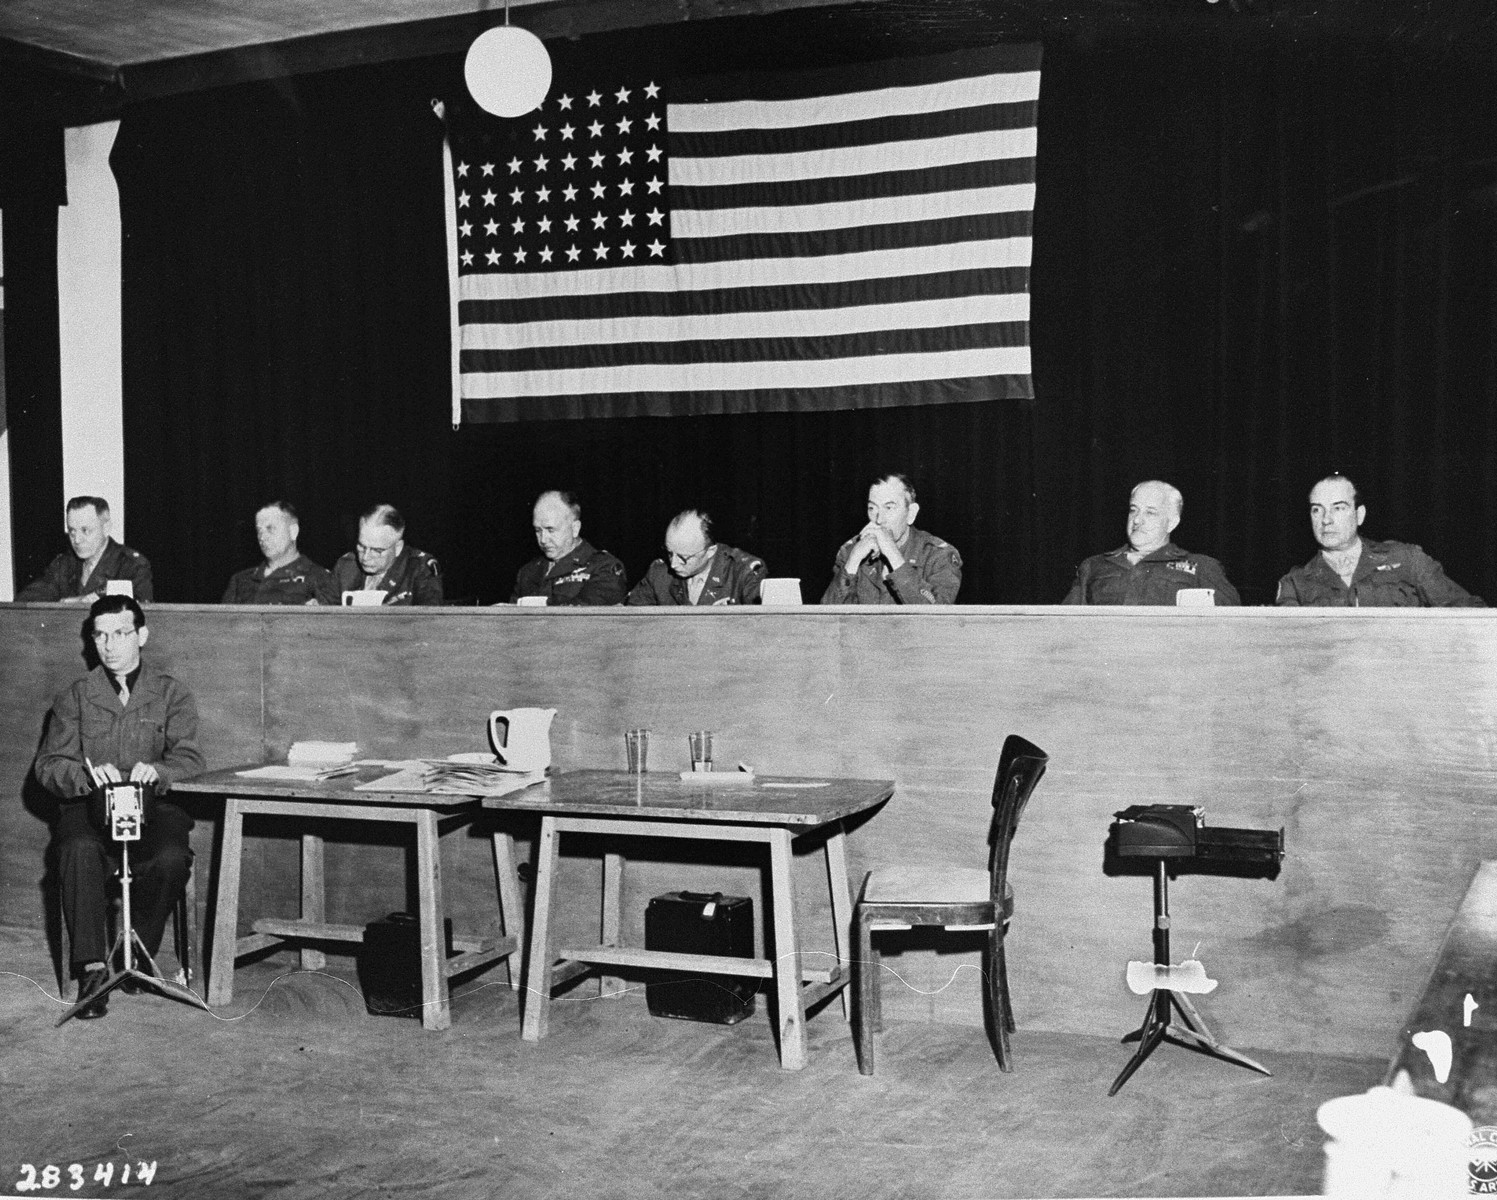 The eight American officers of the U.S. military tribunal at the trial of former camp personnel and prisoners from Buchenwald.    The court personnel pictured from left to right are Lt. Col. Morris, Col. Robertson, Col. Ackerman, Brig. Gen. Kiel, Lt. Col. Dwinell, Col. Pierce, Col. Dunnning, and Lt. Col. Walker.